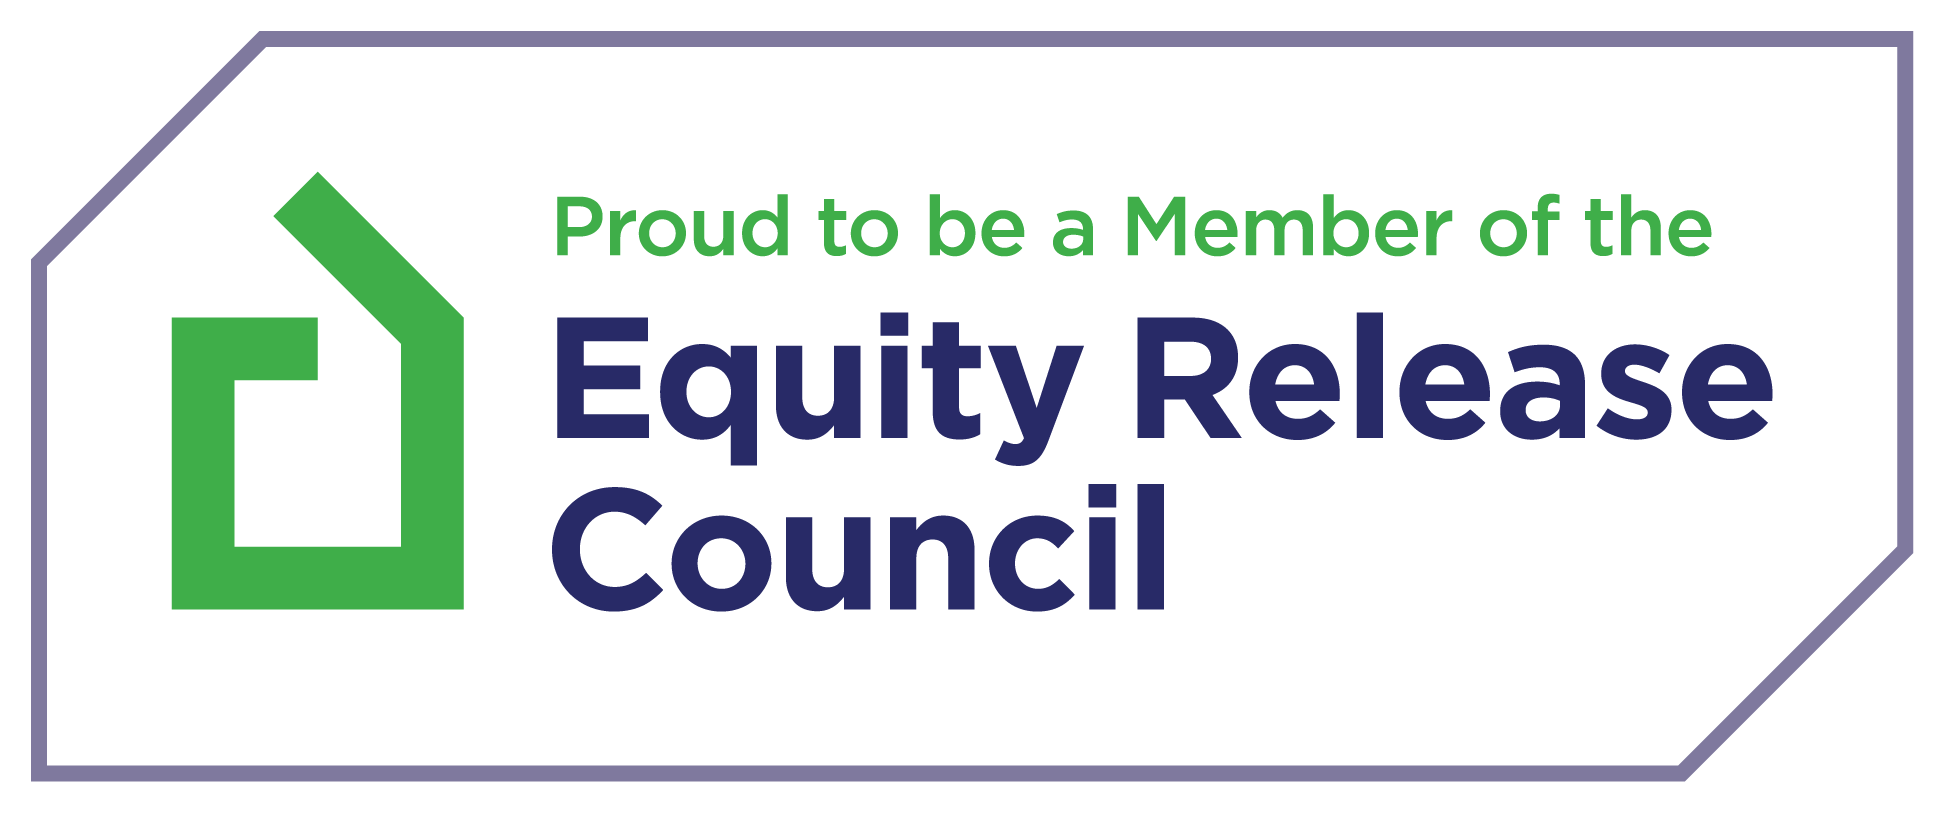 Member Of The Equity Release Council